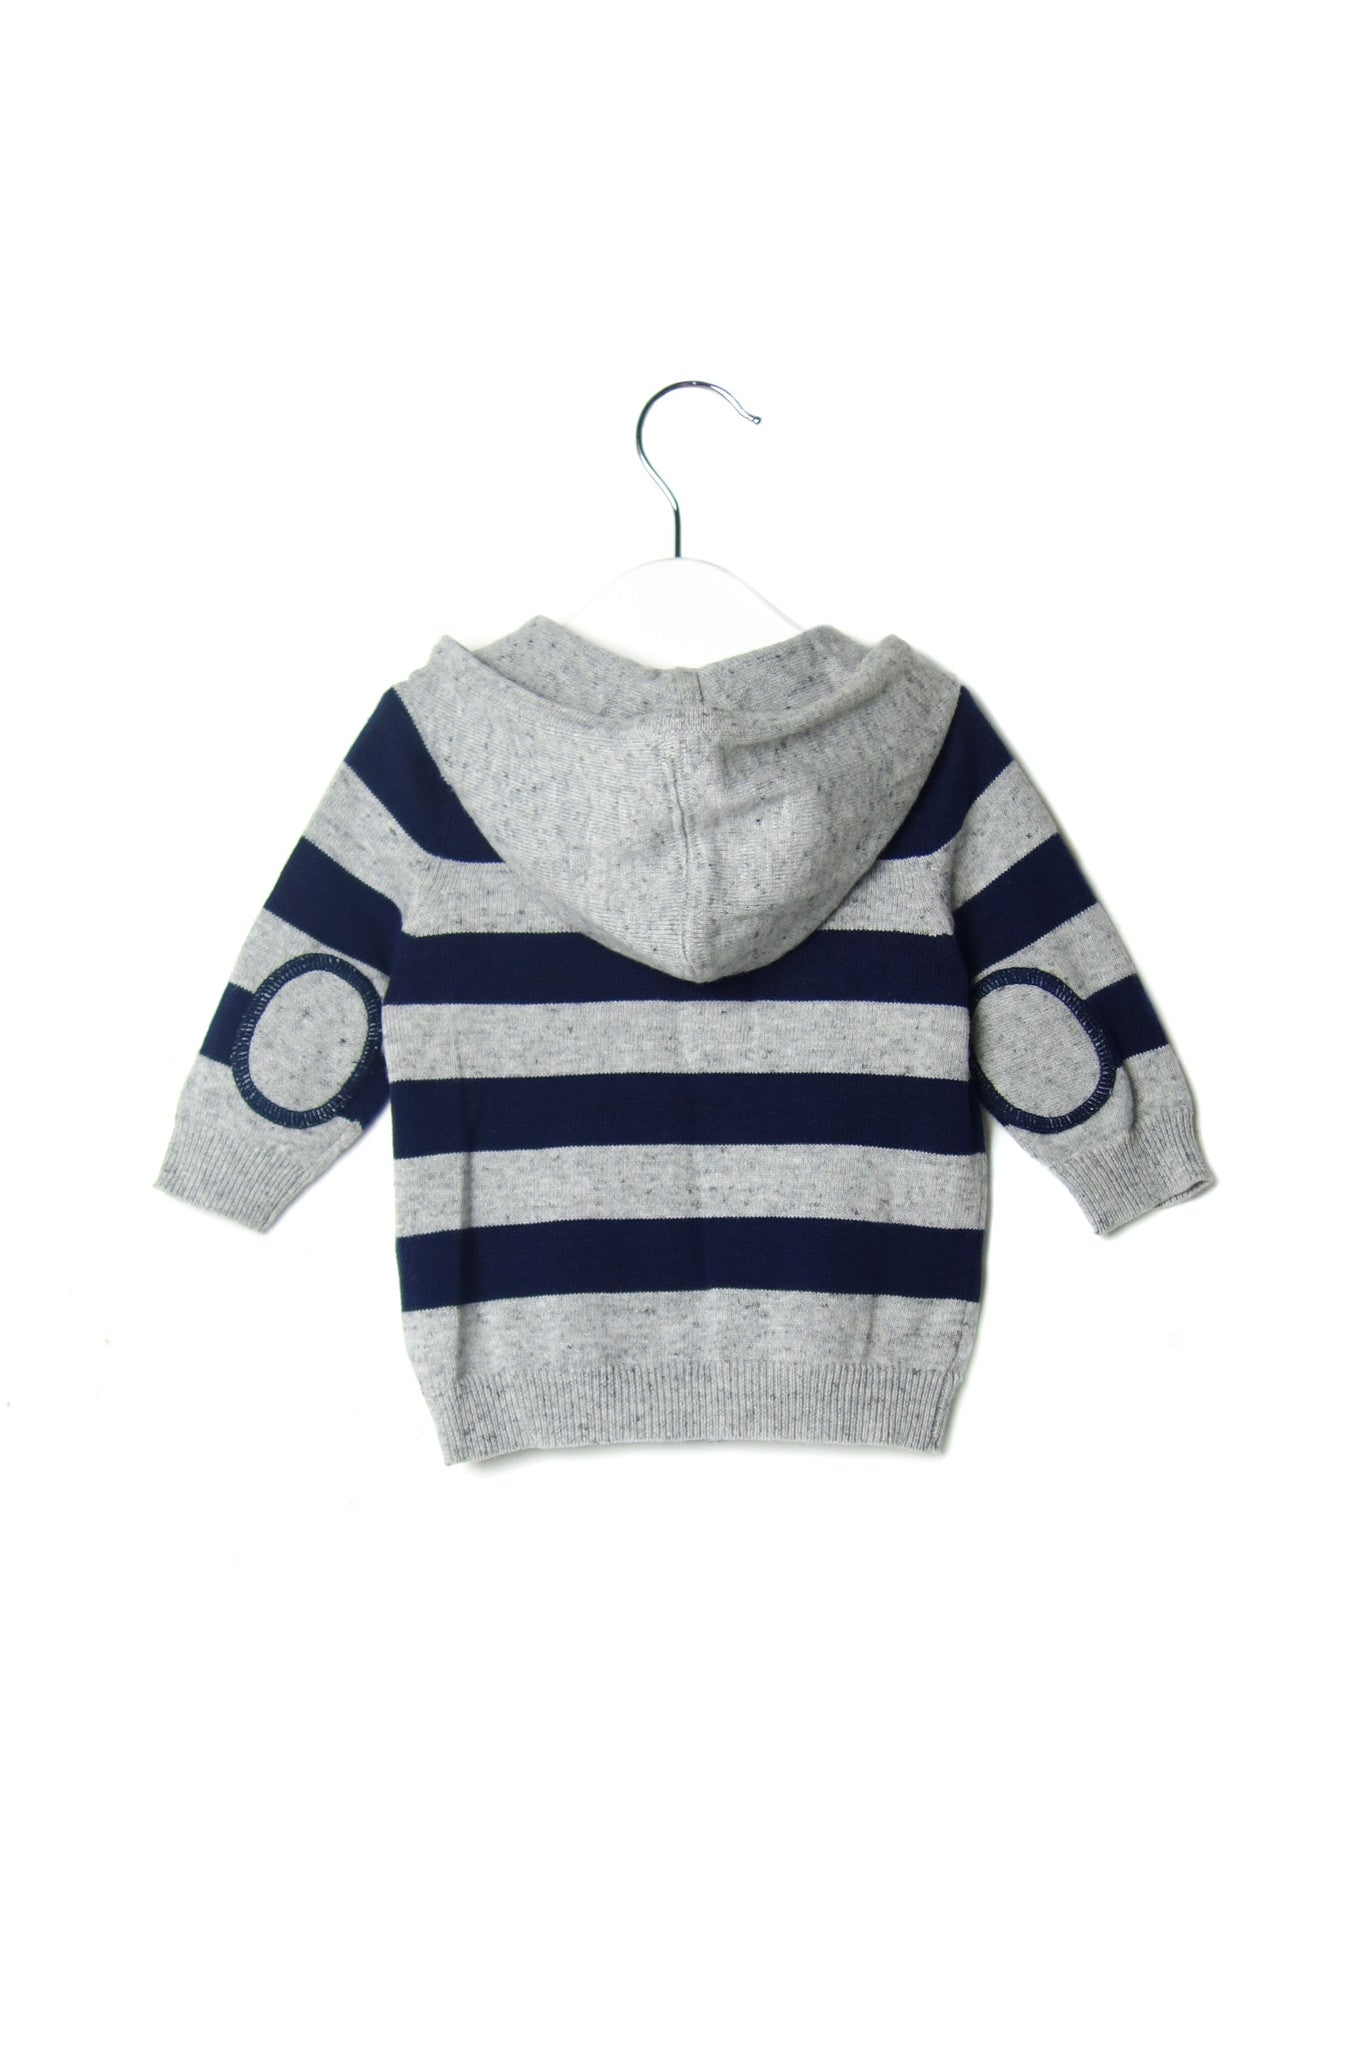 10002015 Seed Baby~Sweatshirt 0-3M at Retykle